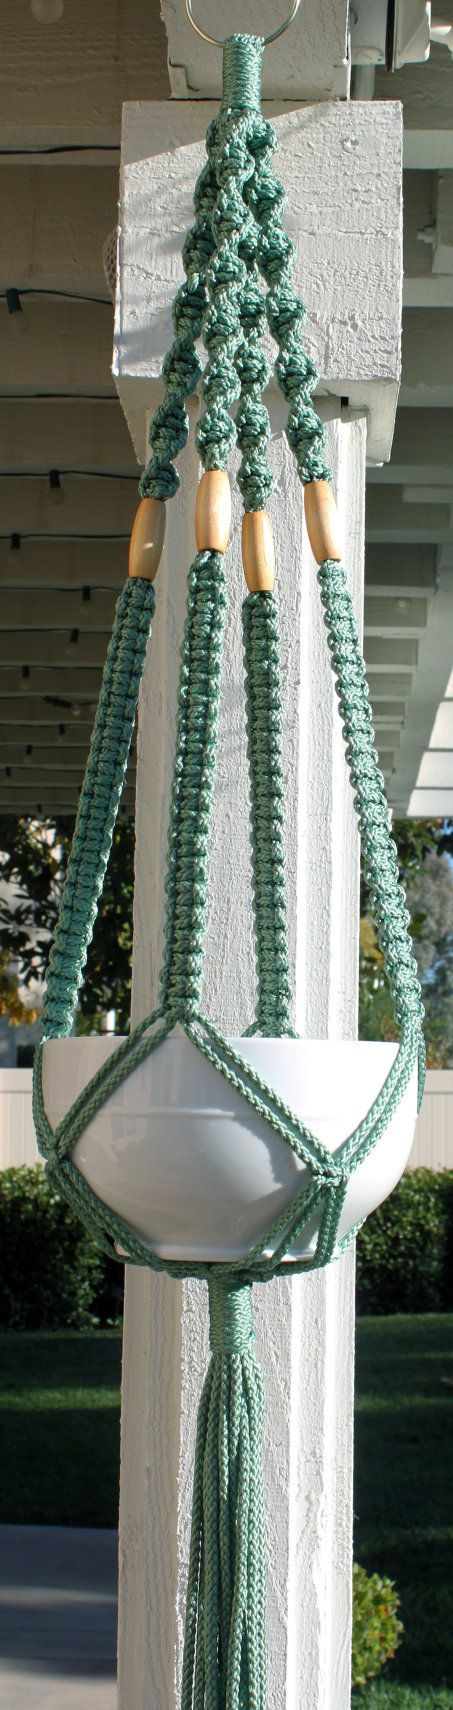 Handmade Blue Green Teal Macrame Plant Hanger by ChironCreations